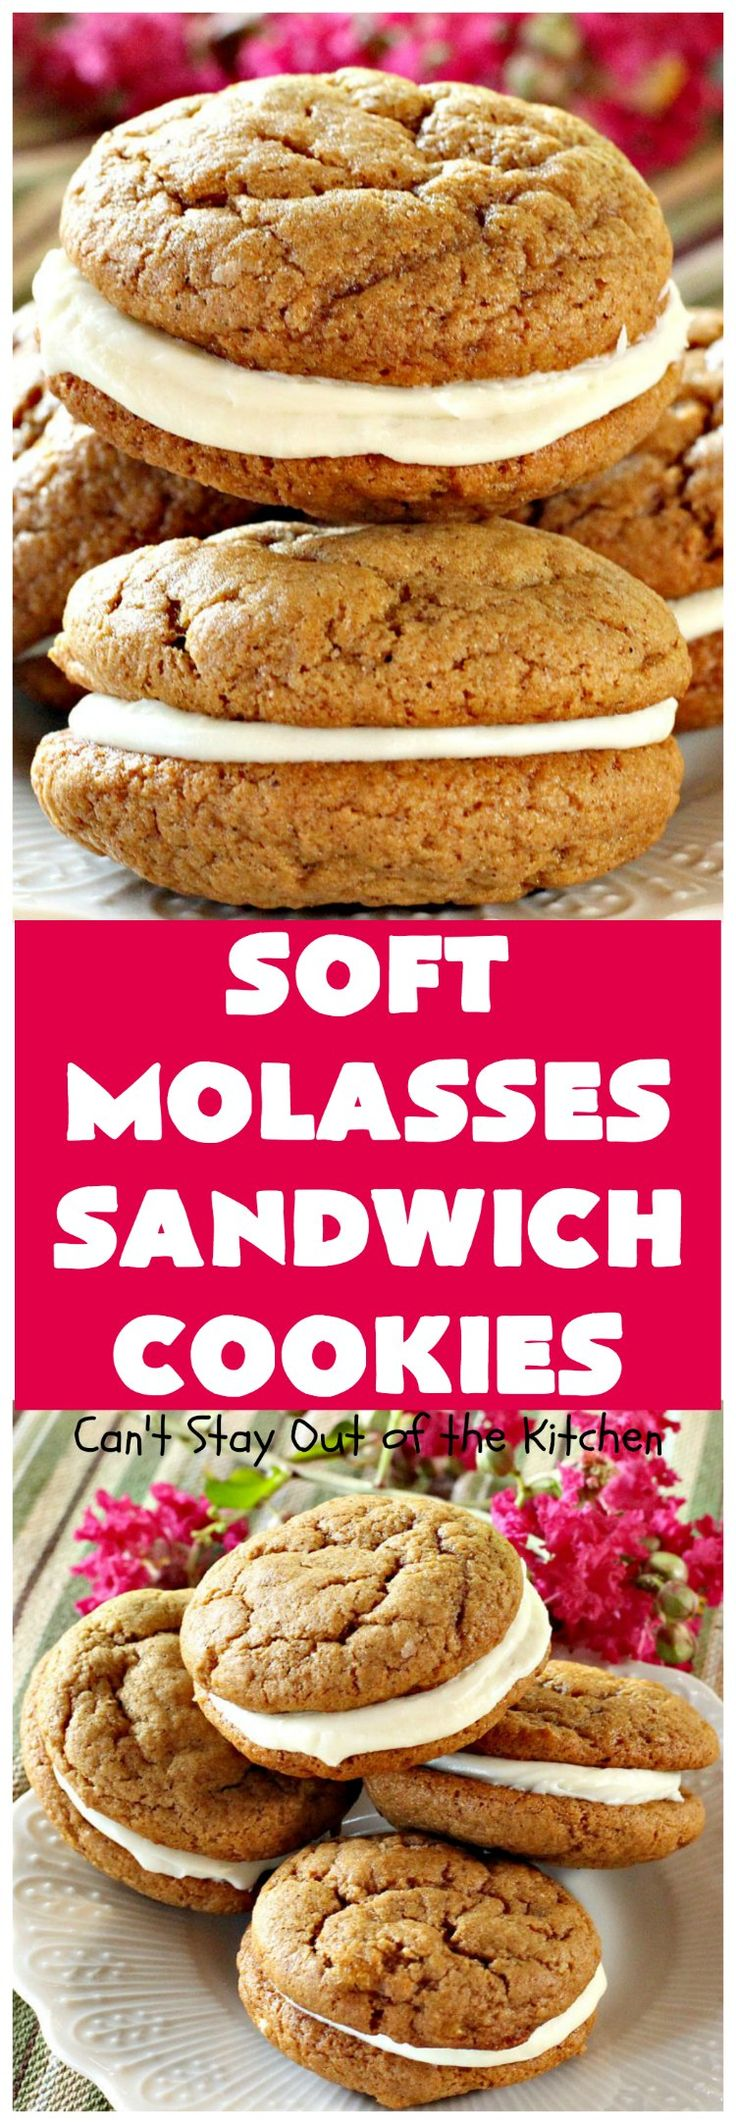 Soft Molasses Sandwich Cookies | These are always one of our most requested cookies at Christmas. Everybody loves them!